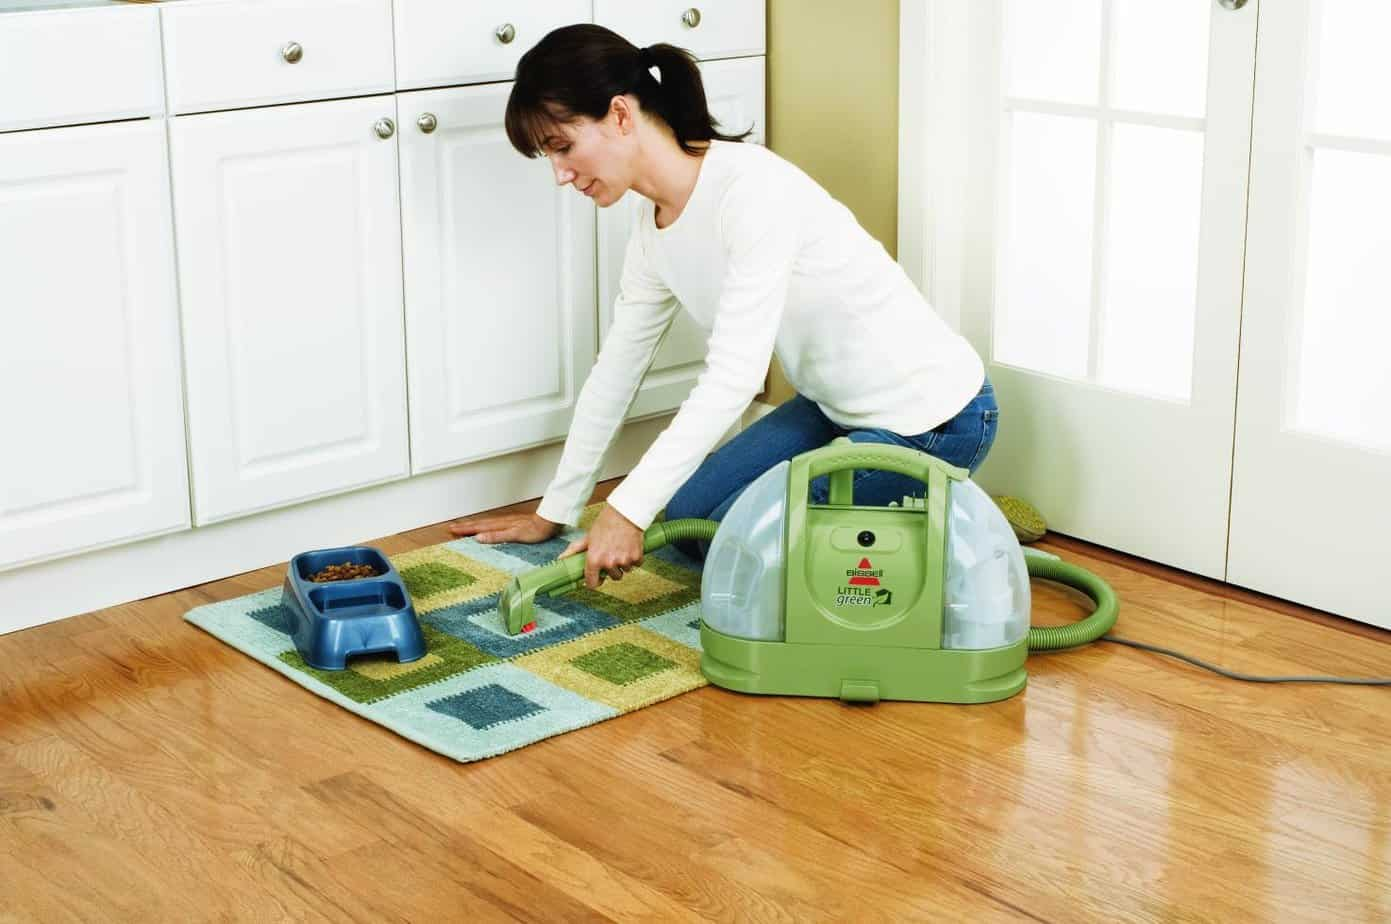 Best Handheld Carpet Cleaner - BISSELL 30K4E Multi-Purpose Carpet Cleaner